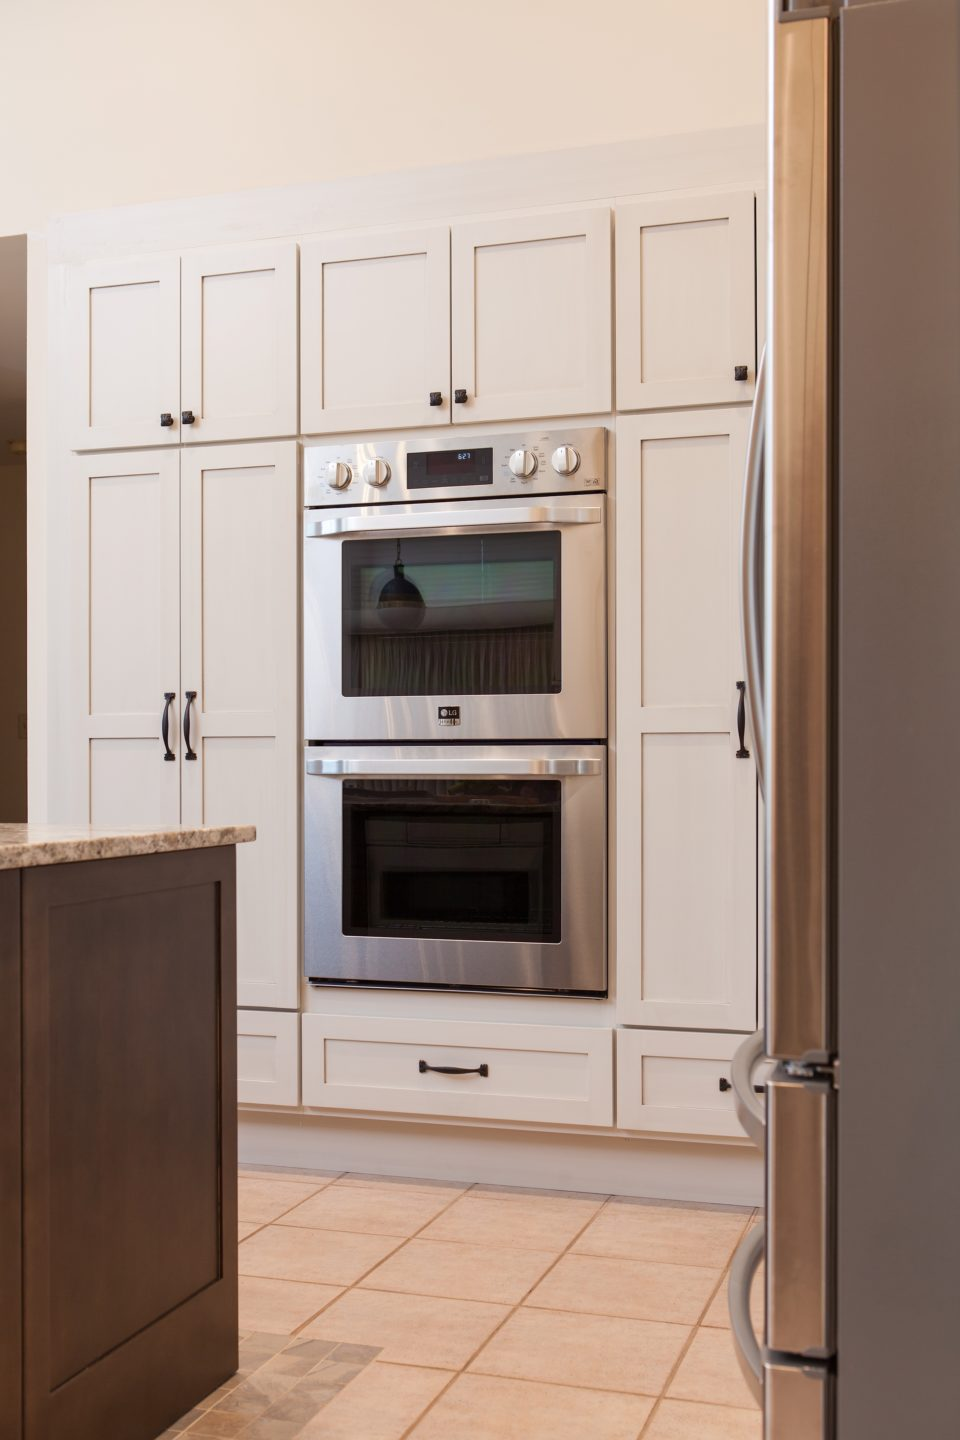 Double the Ovens, Double the Cooking Space